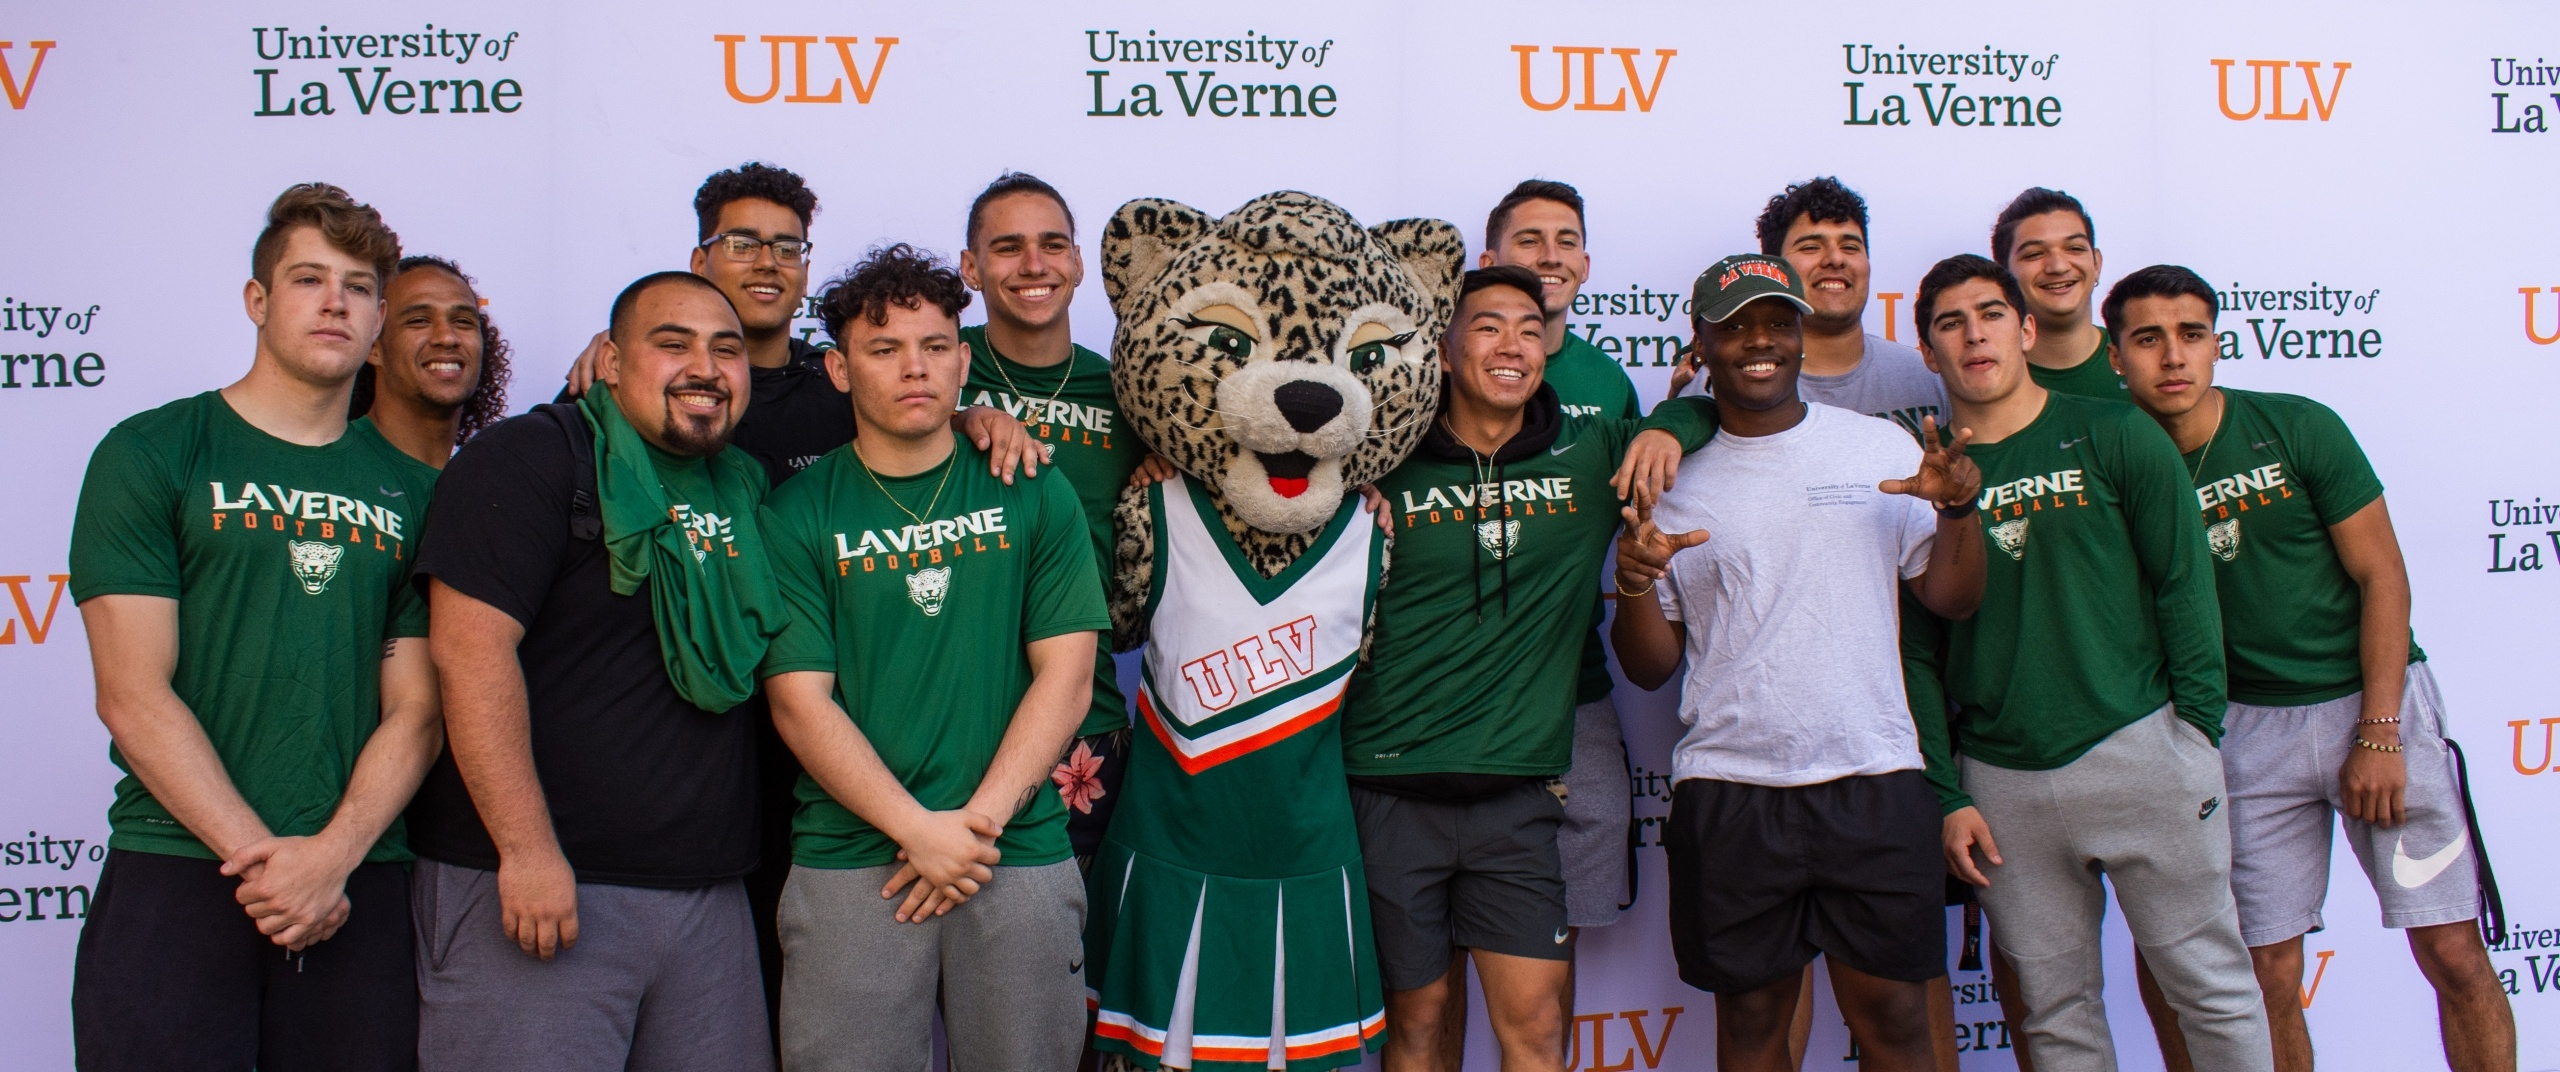 University of La Verne students take a photo with Lea the Leopard